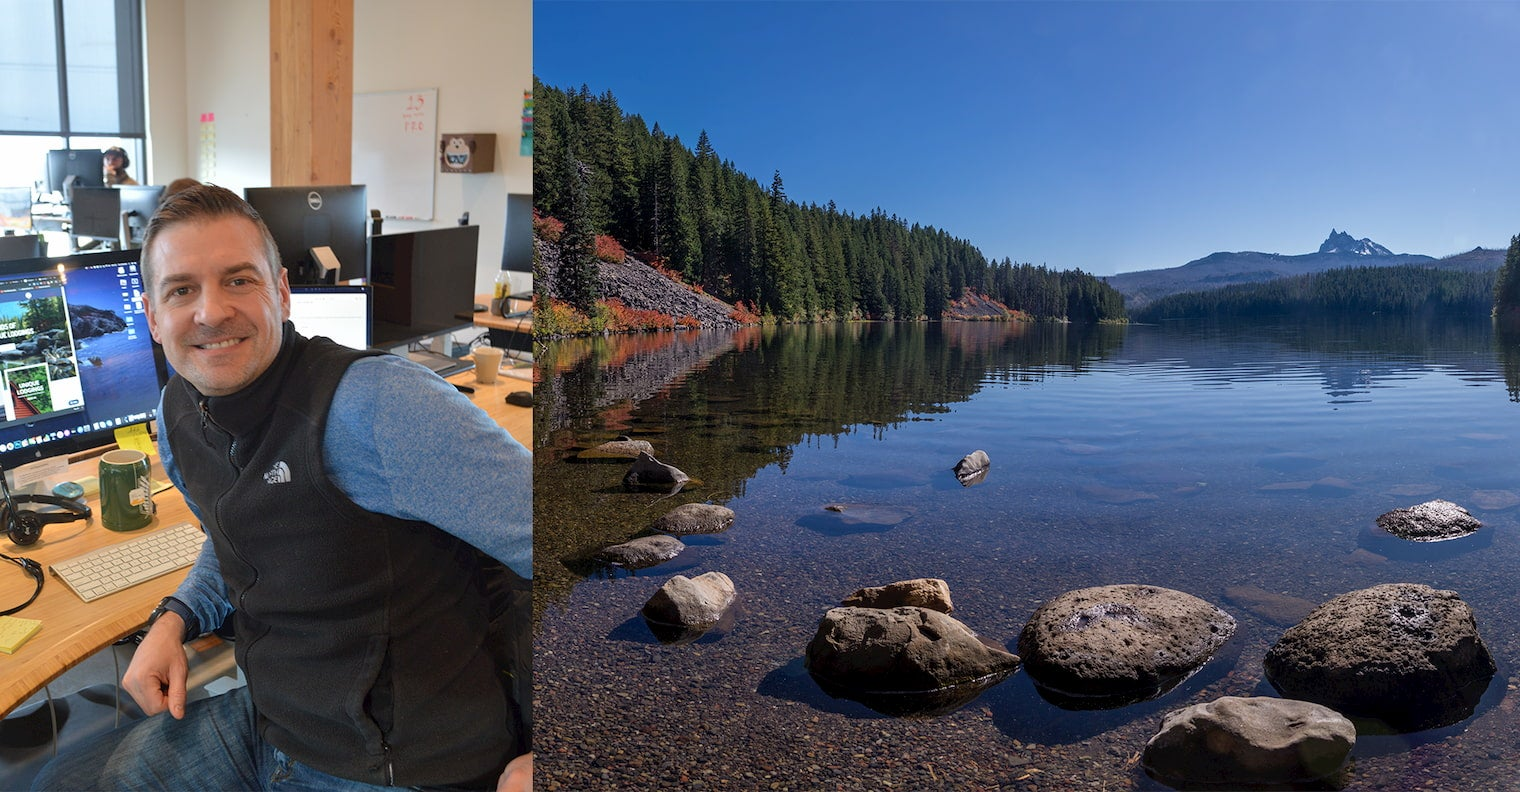 On the left man smiling at his desk, on the right image of lake with small mountain peak in the background.